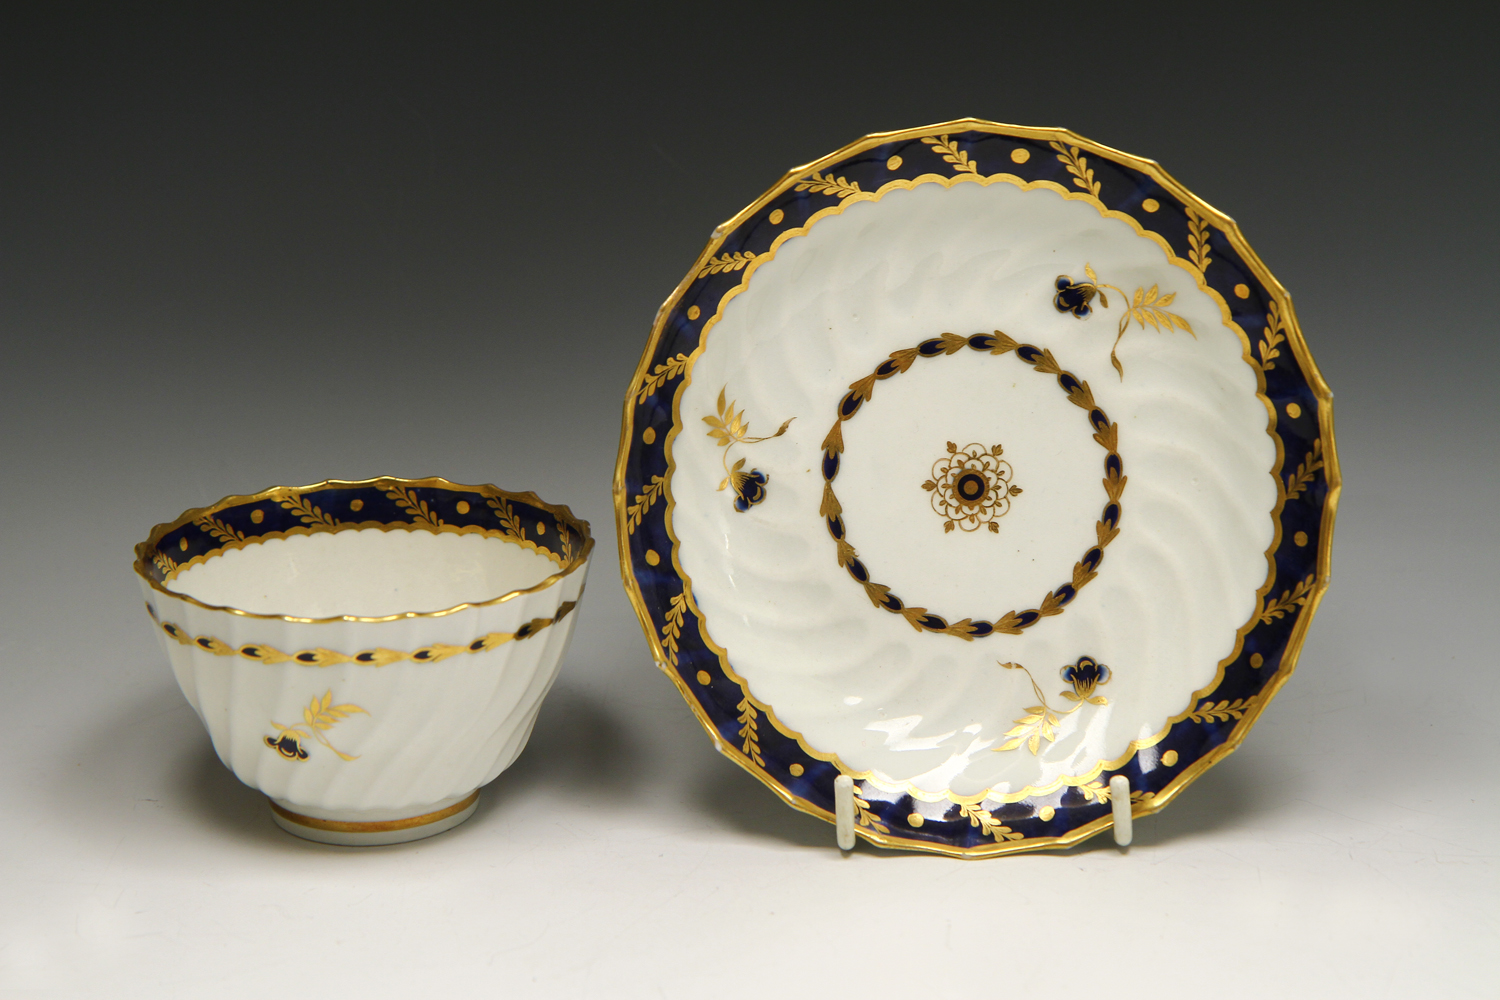 1046 - A Worcester Flight marked cup and saucer c 1785